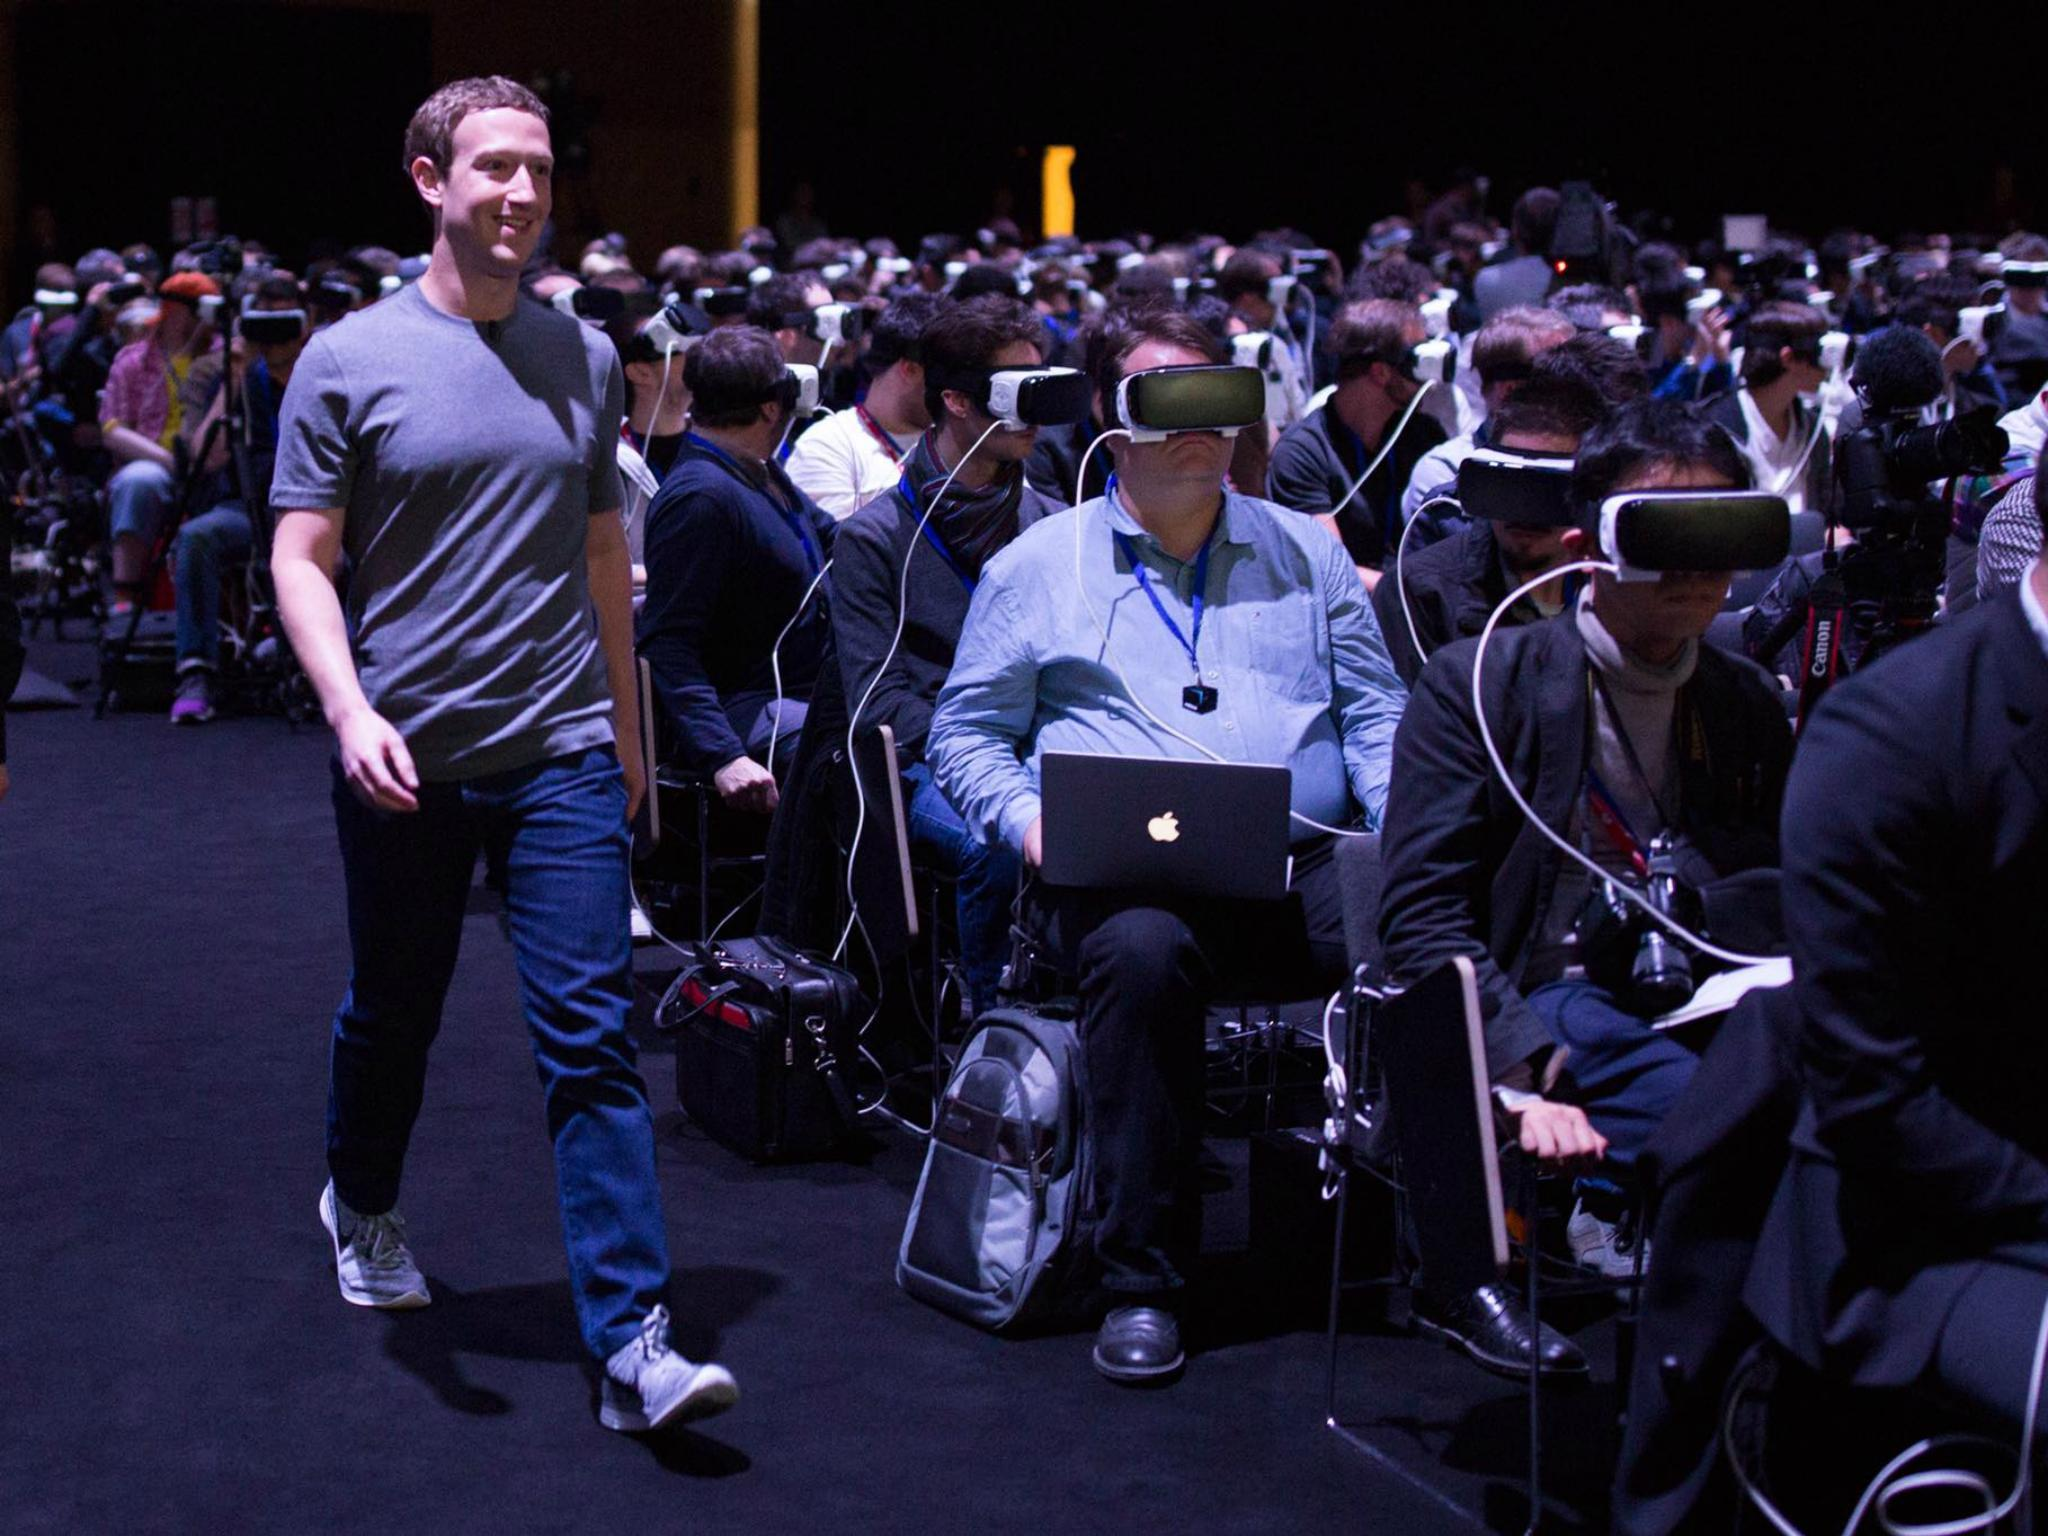 Facebook wants users to browse the web while wearing a headset